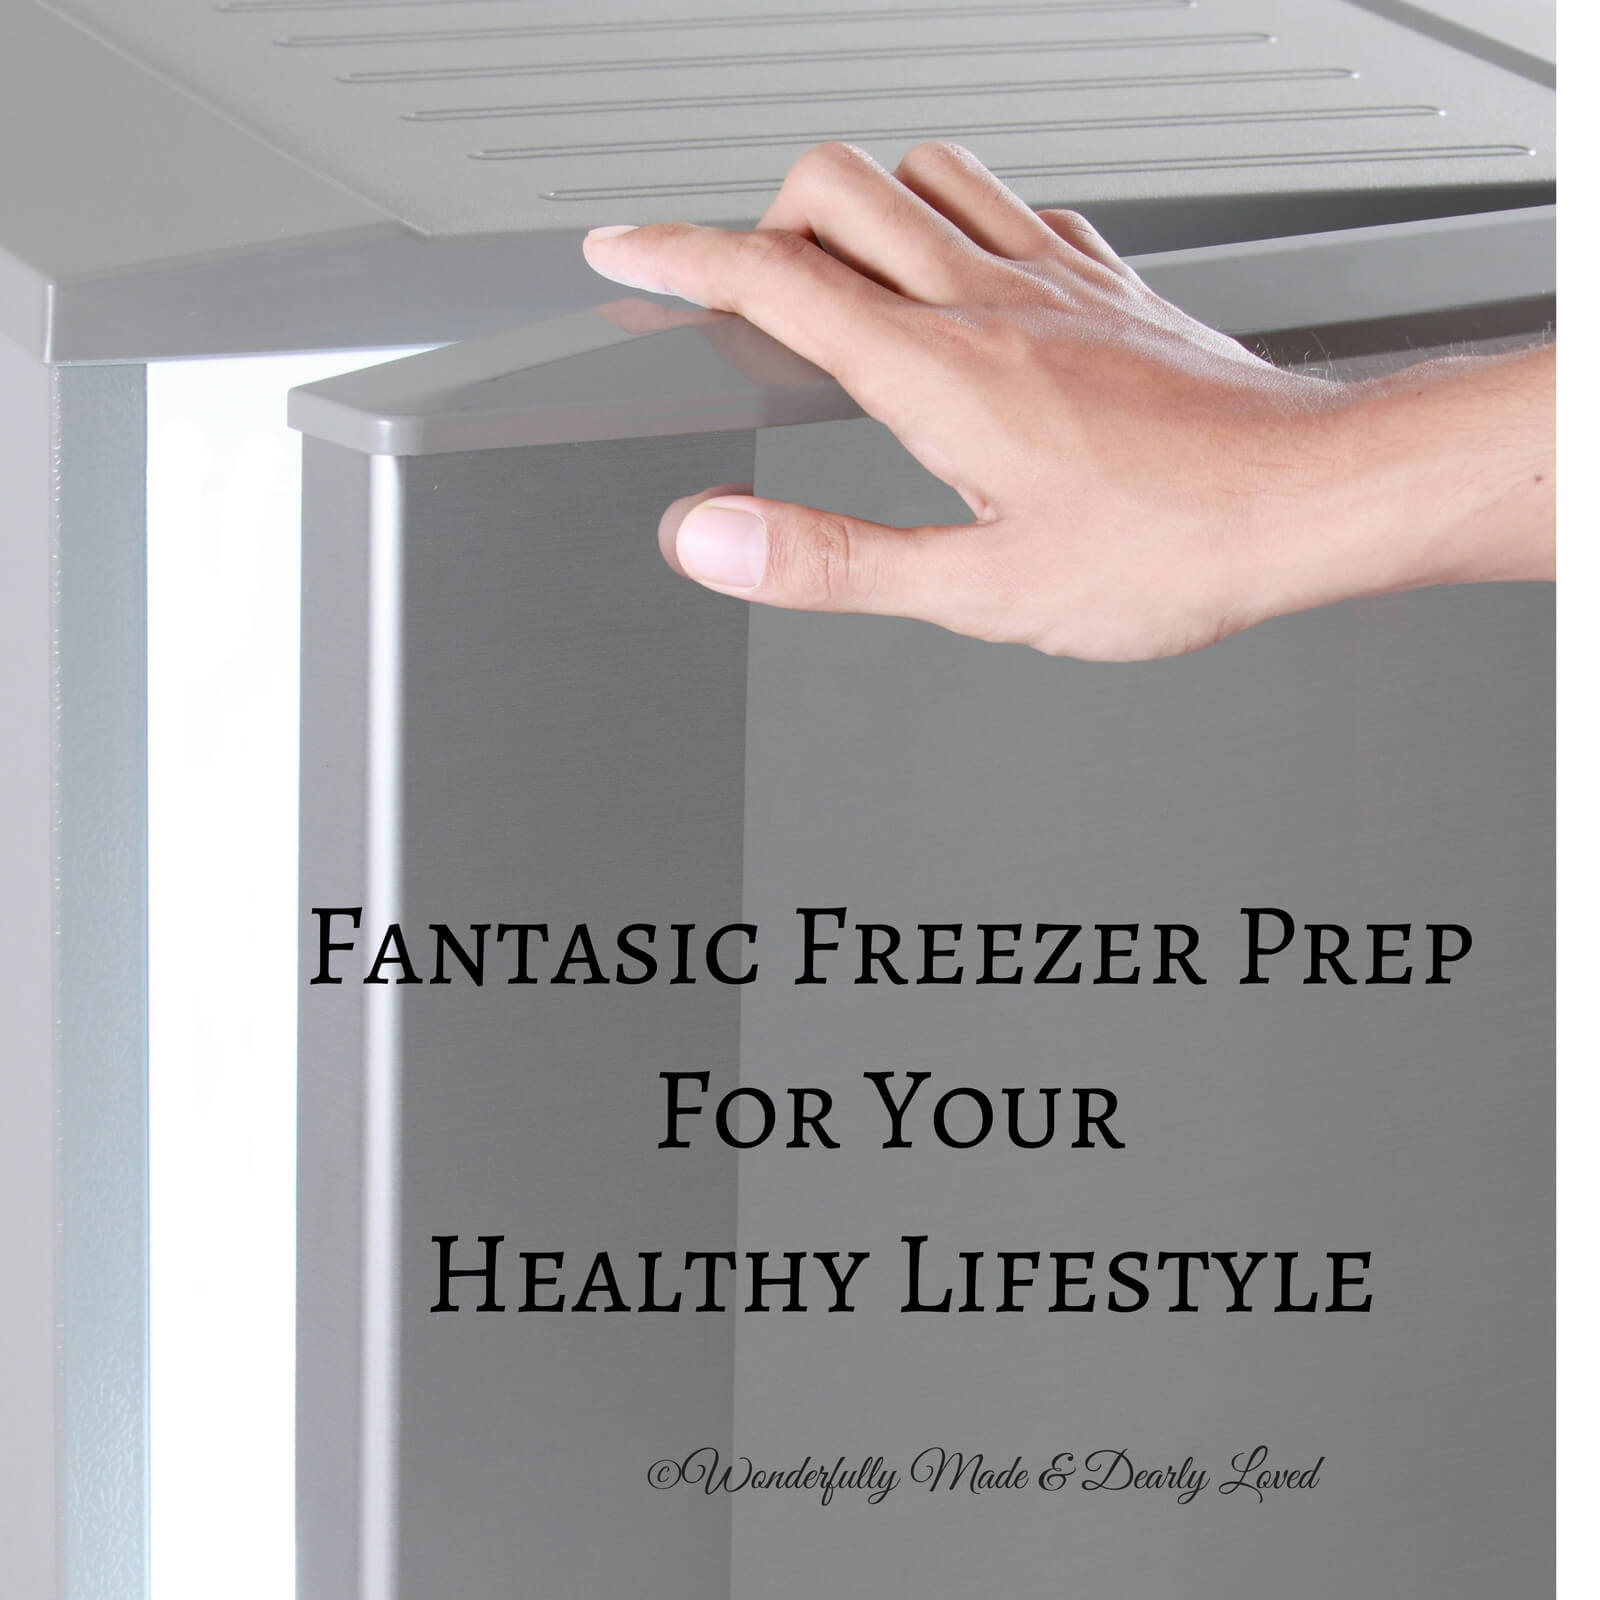 Fantastic Freezer Prep tips and recipes for your heathy lifestyle. #THM #LowCarb #DiabeticCooking